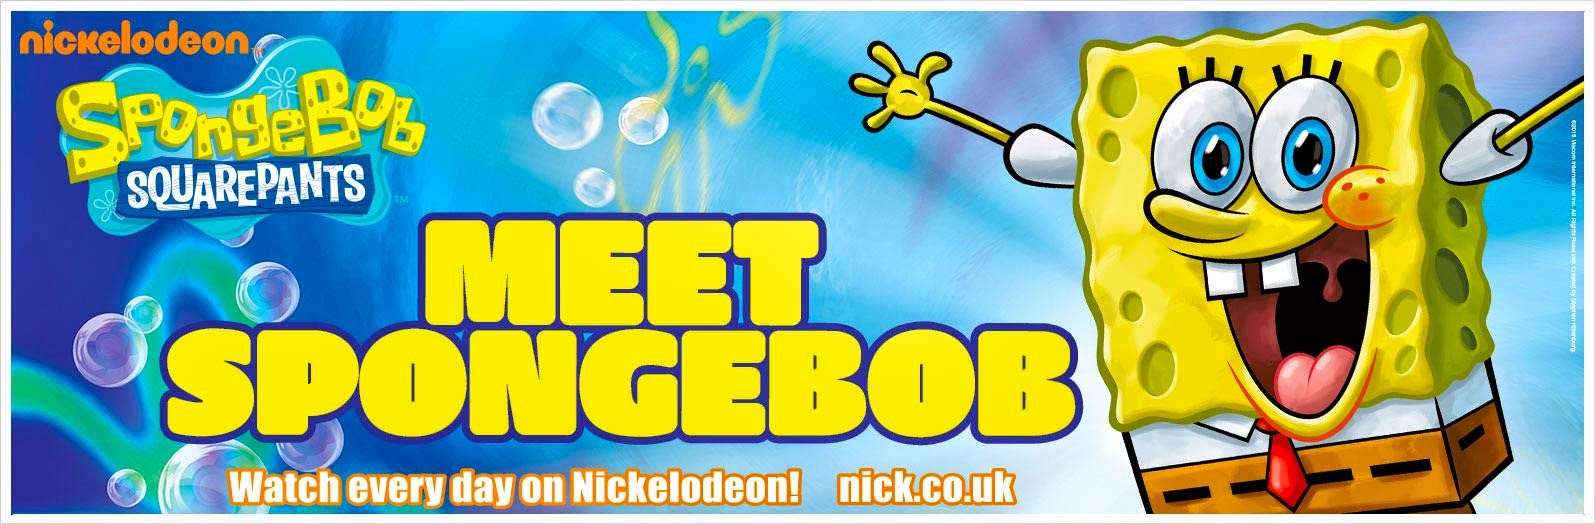 Terrific Nickalive Meet Spongebob Squarepants At A Smyths Toys Superstore  With Handsome Taking Time Out Of His Busy Film Schedule Spongebob Has Been Busy  Practicing His Most Heroic And Funny Poses Ready For Any Photo Opportunity   With Delectable Garden Weeding Also Garden Fire Place In Addition Royal Opera Covent Garden And Garden Playhouse With Slide And Swing As Well As Garden Landscape Design Ideas Additionally Bosch Garden From Nickaliveblogspotcom With   Handsome Nickalive Meet Spongebob Squarepants At A Smyths Toys Superstore  With Delectable Taking Time Out Of His Busy Film Schedule Spongebob Has Been Busy  Practicing His Most Heroic And Funny Poses Ready For Any Photo Opportunity   And Terrific Garden Weeding Also Garden Fire Place In Addition Royal Opera Covent Garden From Nickaliveblogspotcom